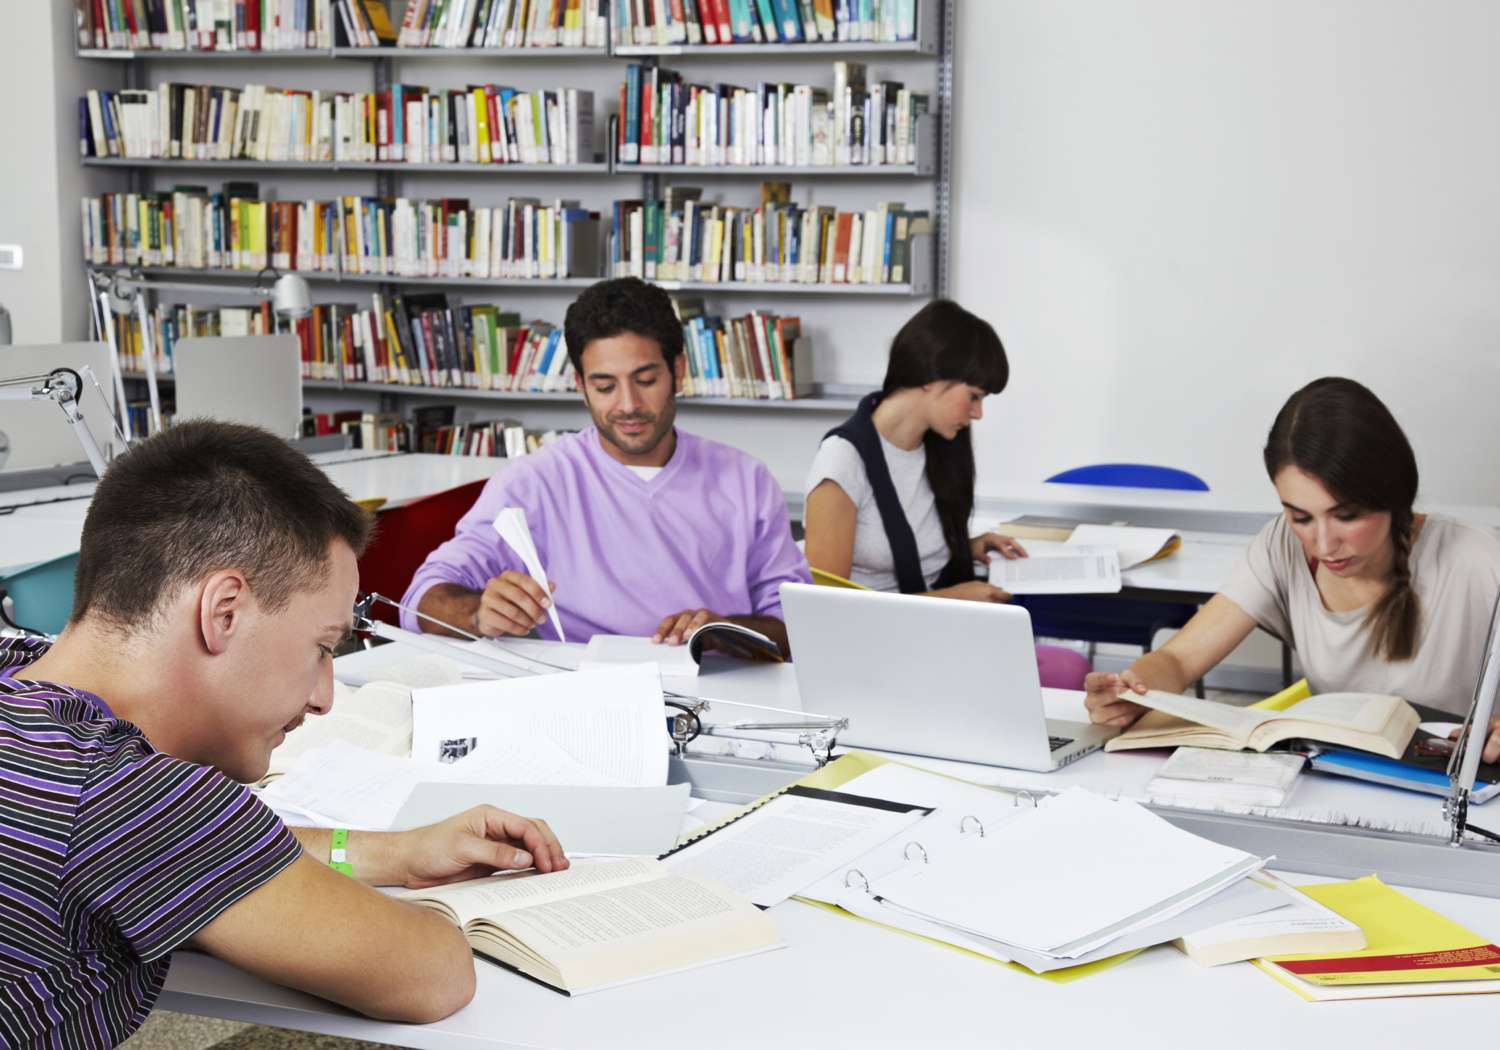 College students studying at library tables with open books and binders scattered around them